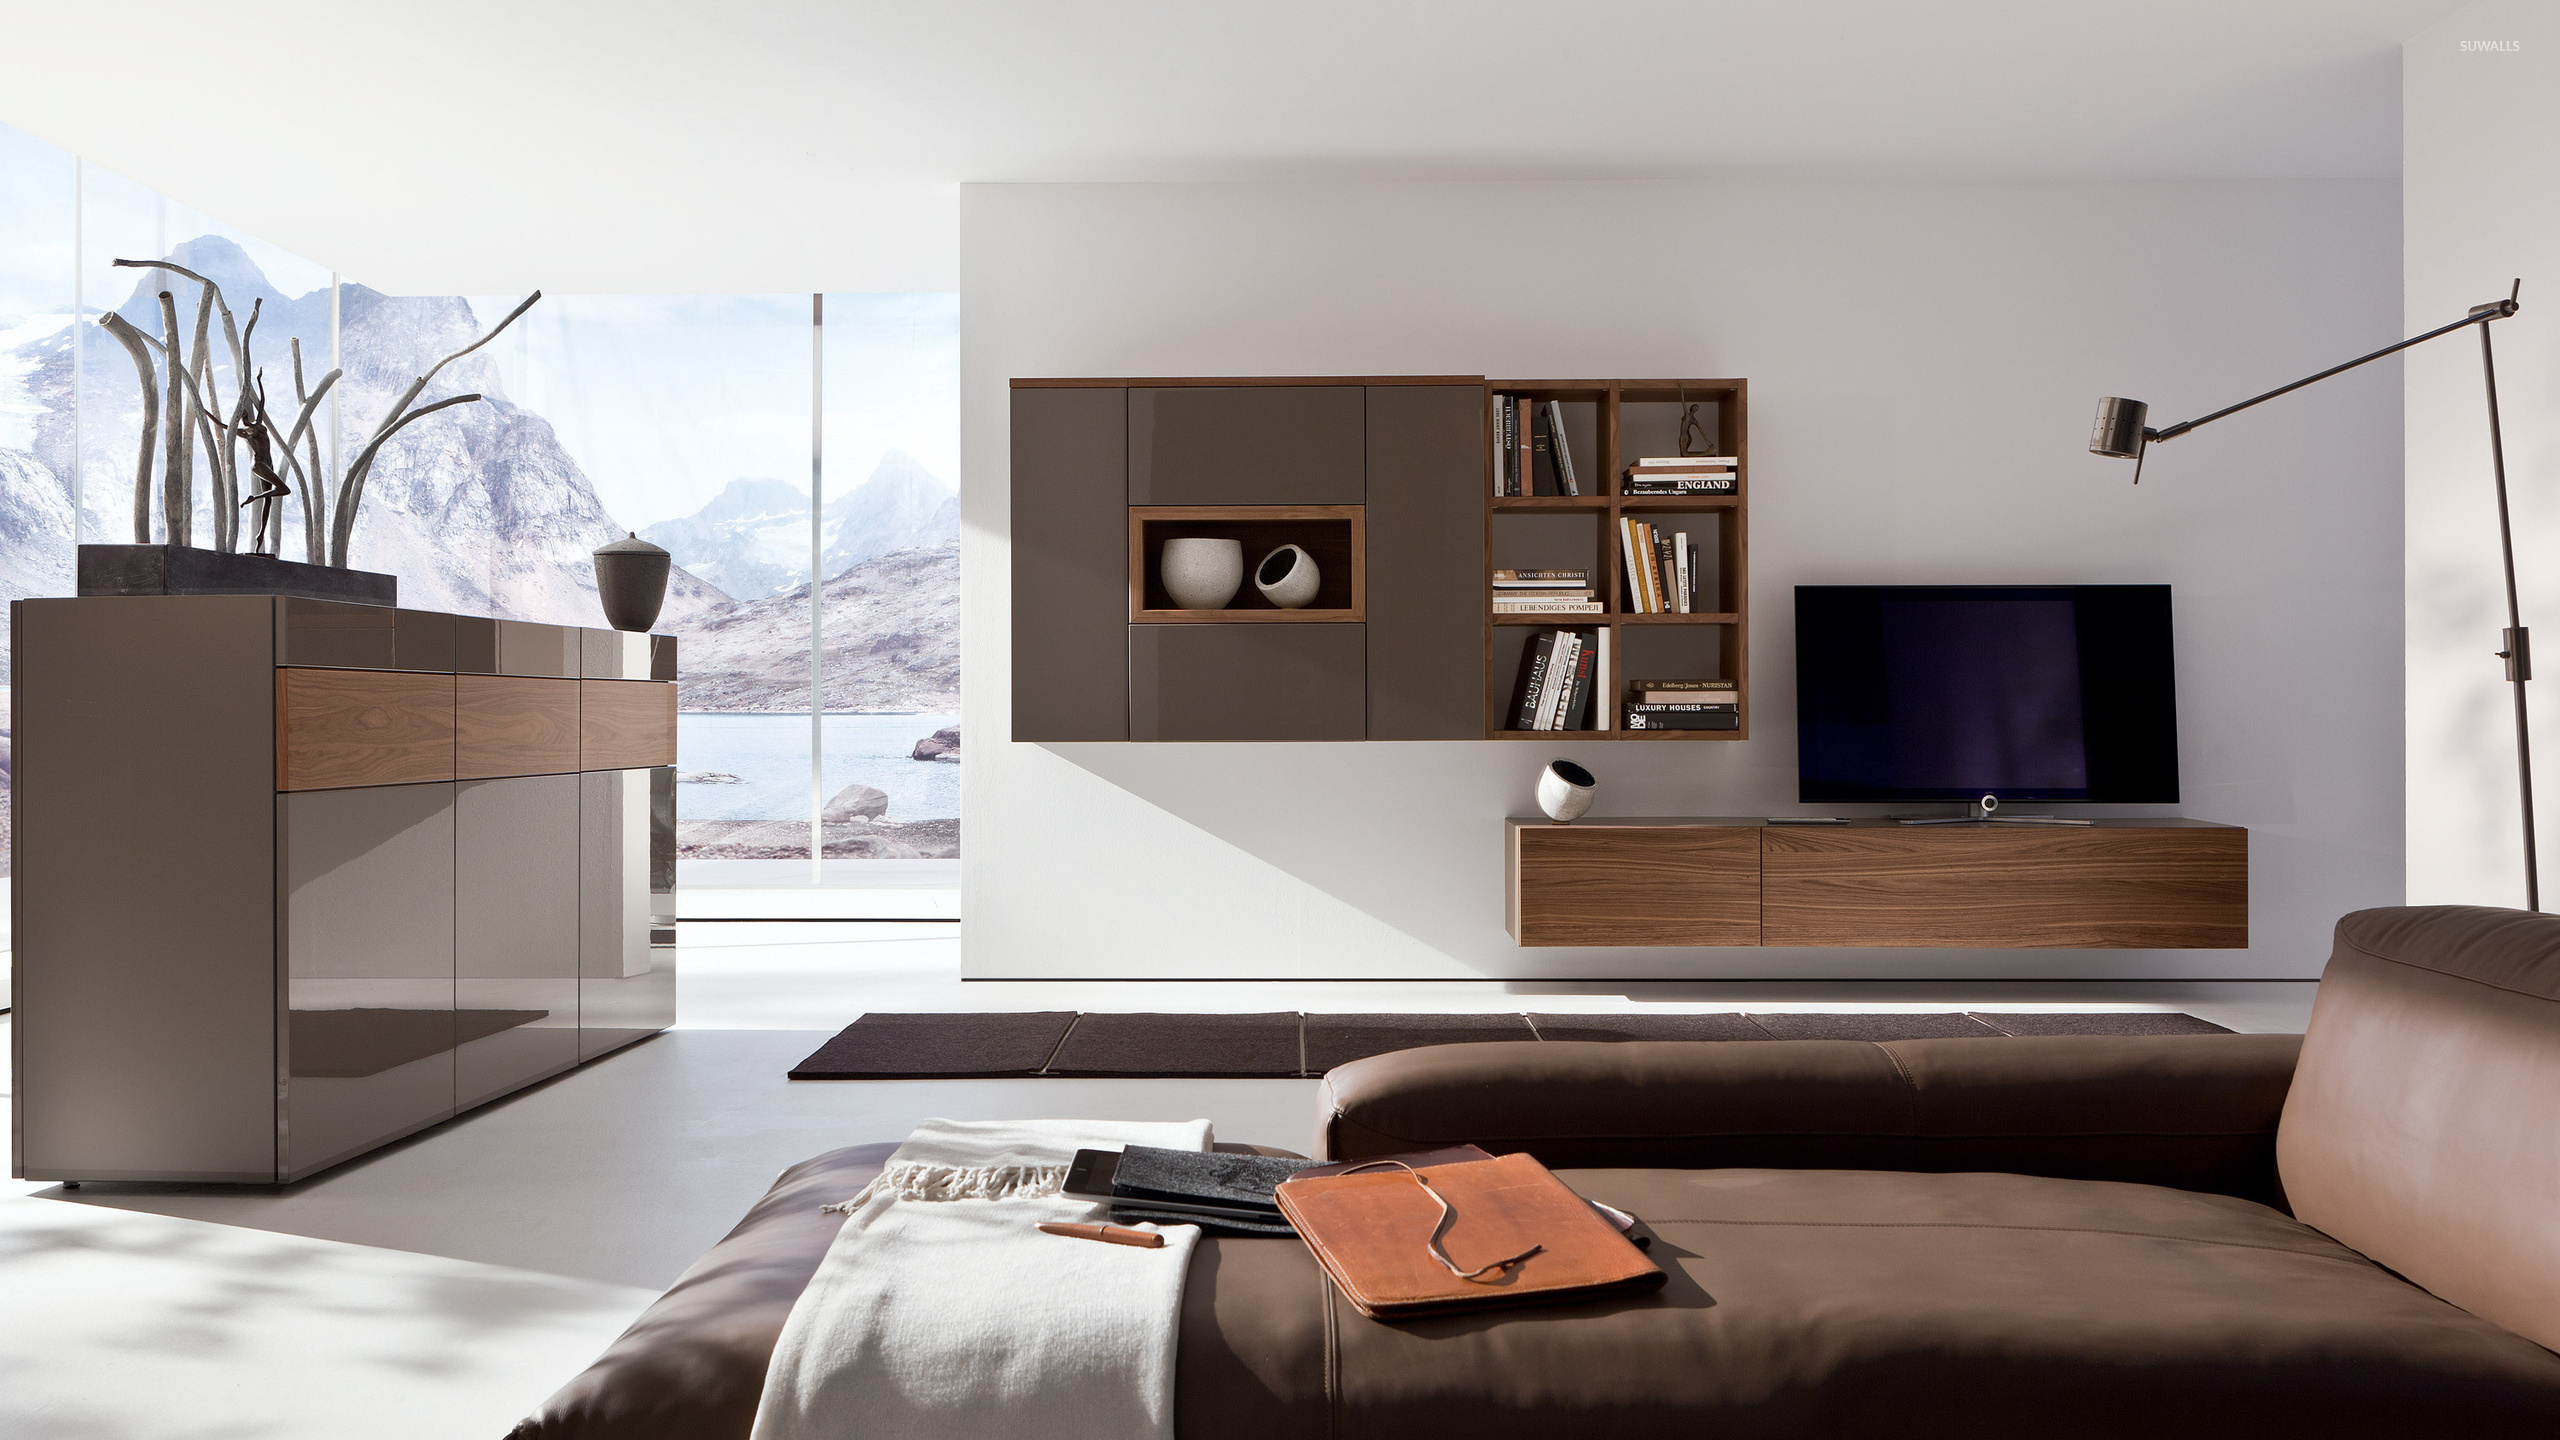 Minimalistic Cozy Living Room Wallpaper Photography Wallpapers